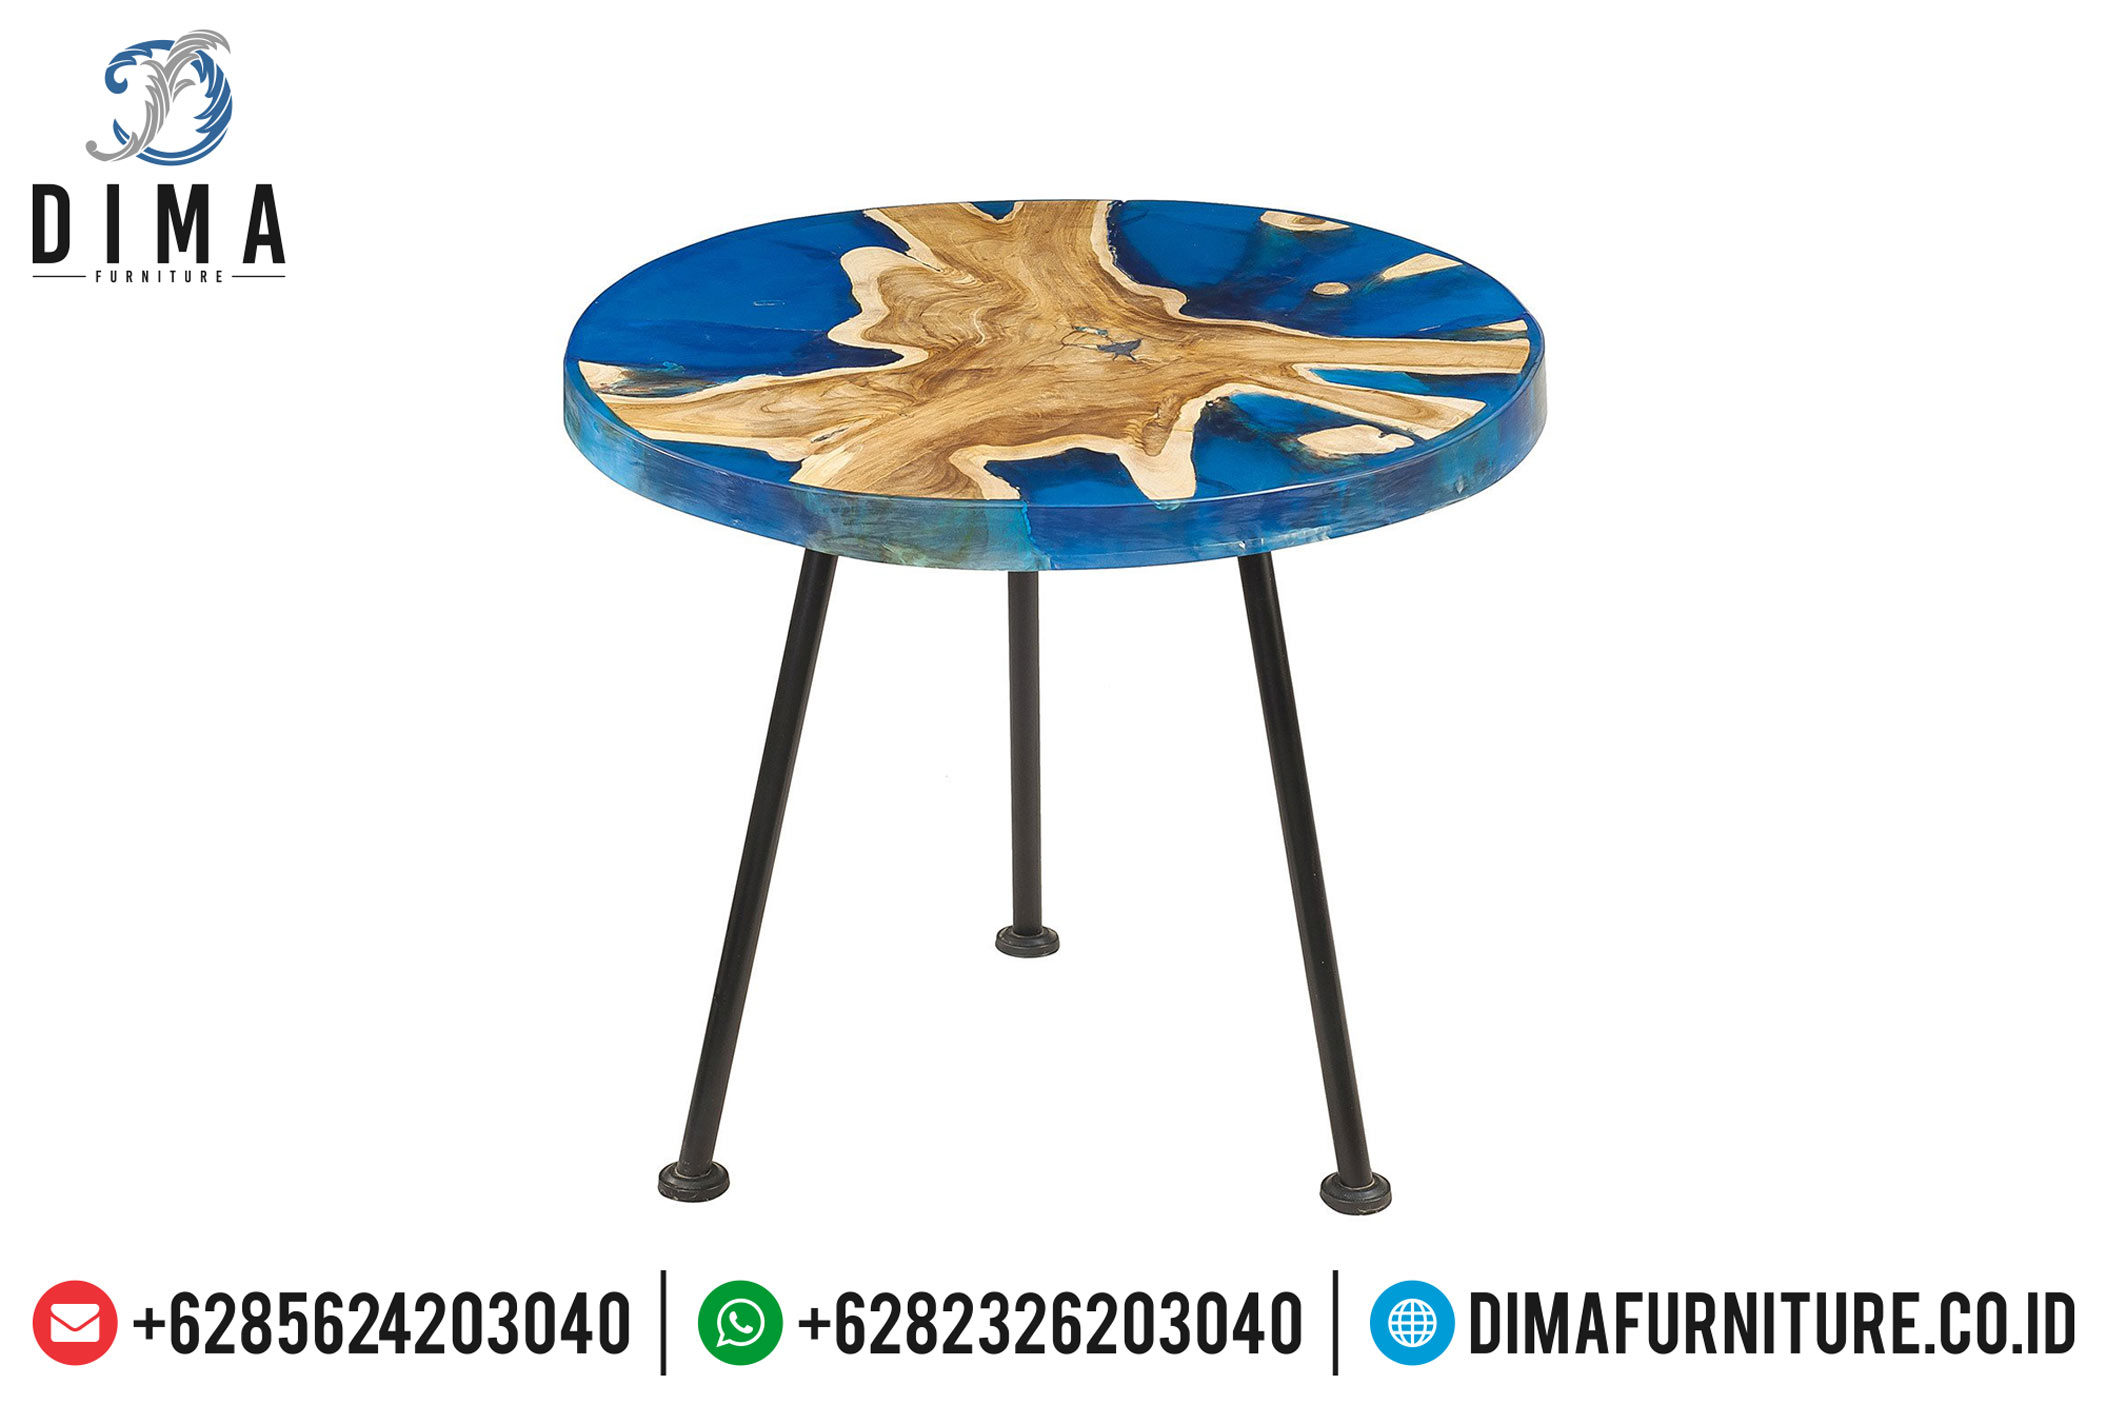 Furniture Resin Indonesia, Meja Resin Minimalis, Wooden Resin Table MM-0382